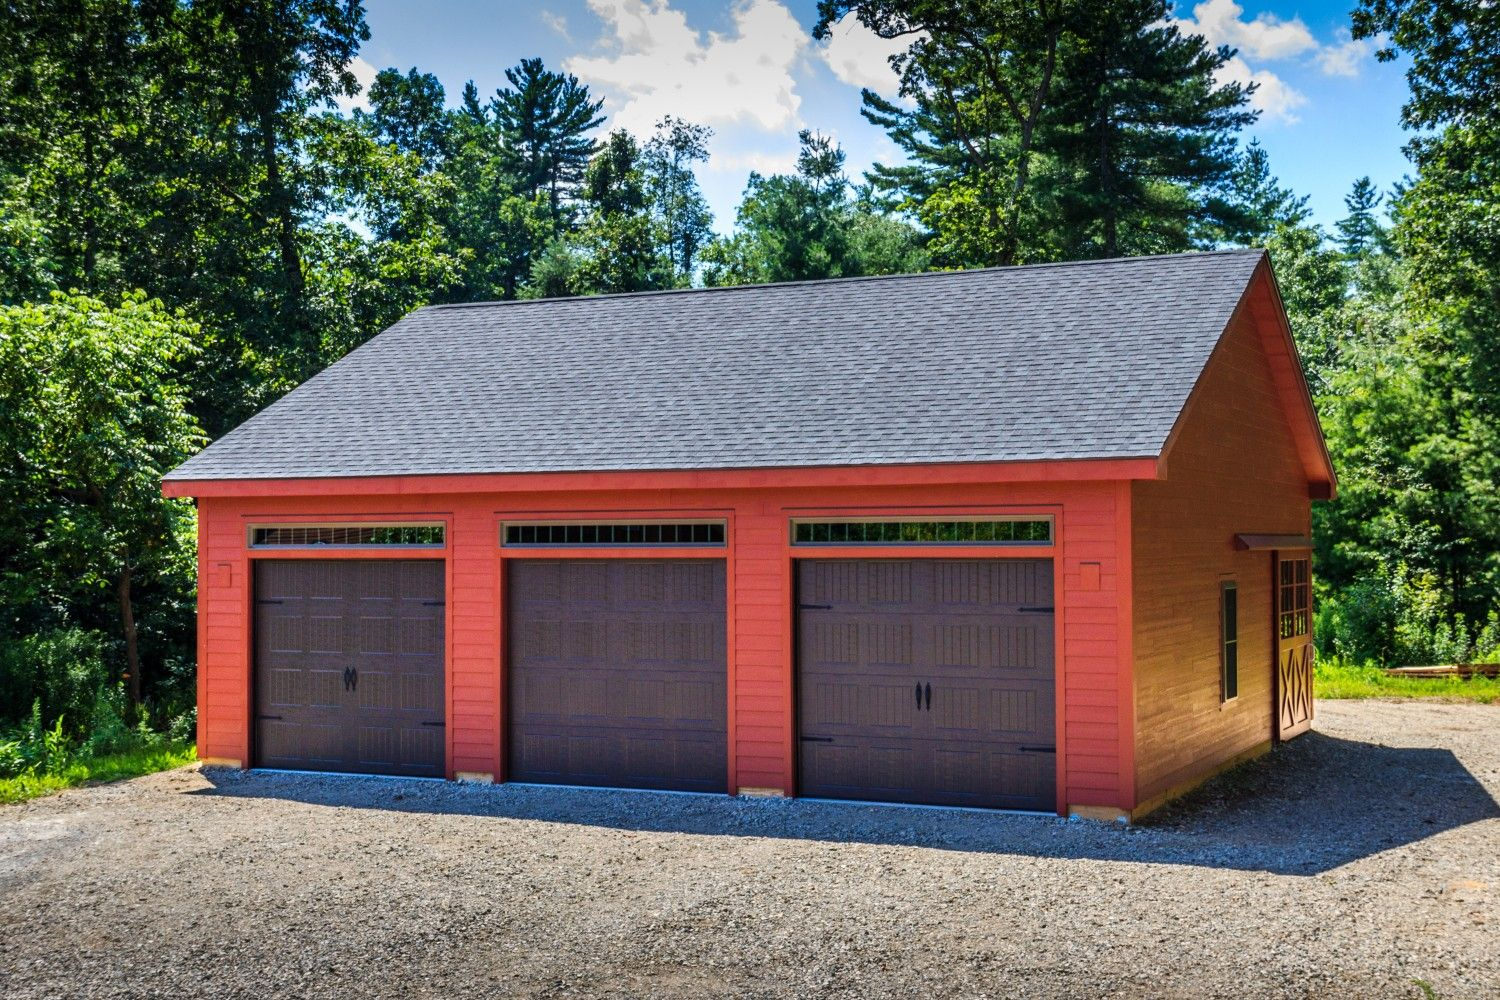 Roosevelt A Frame Style One Story Garage The Barn Yard Great Country Garages Garage Style Single Garage Door Garages